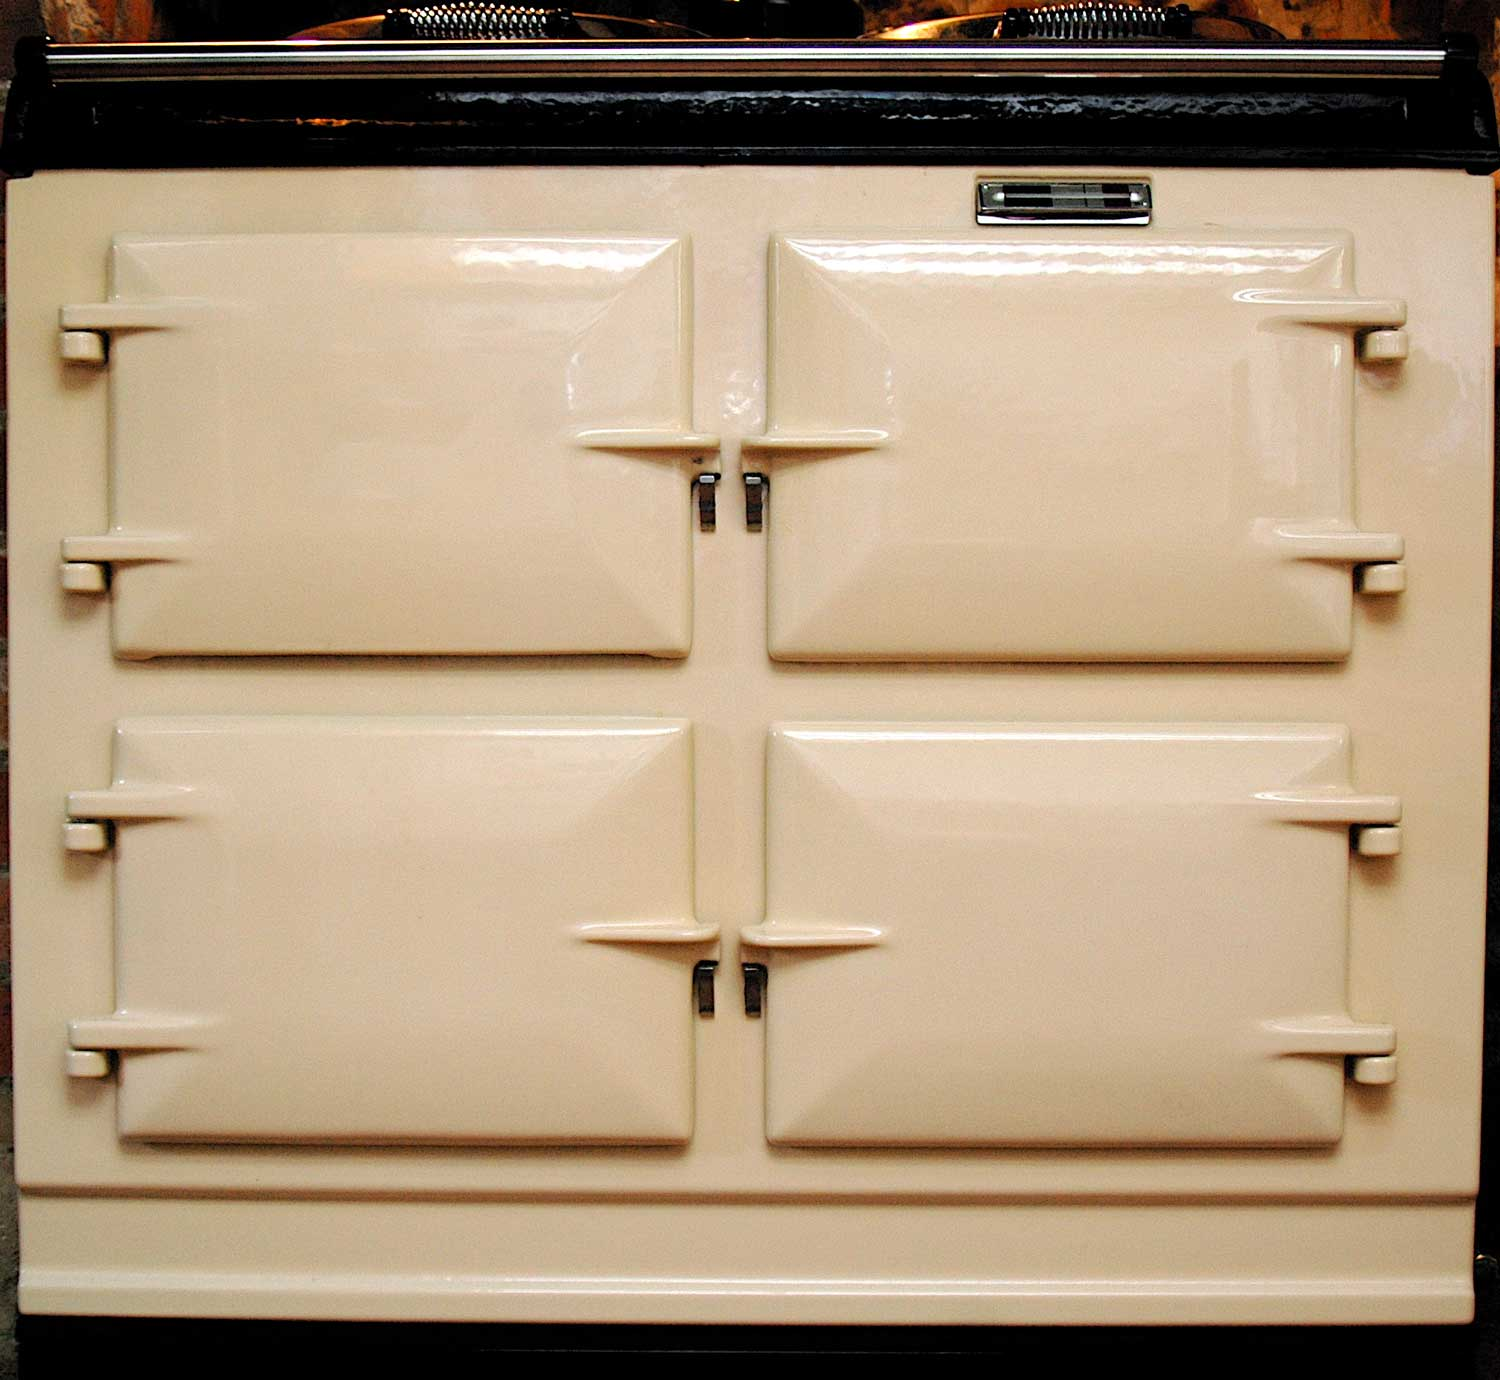 3 oven Aga range cooker in cream